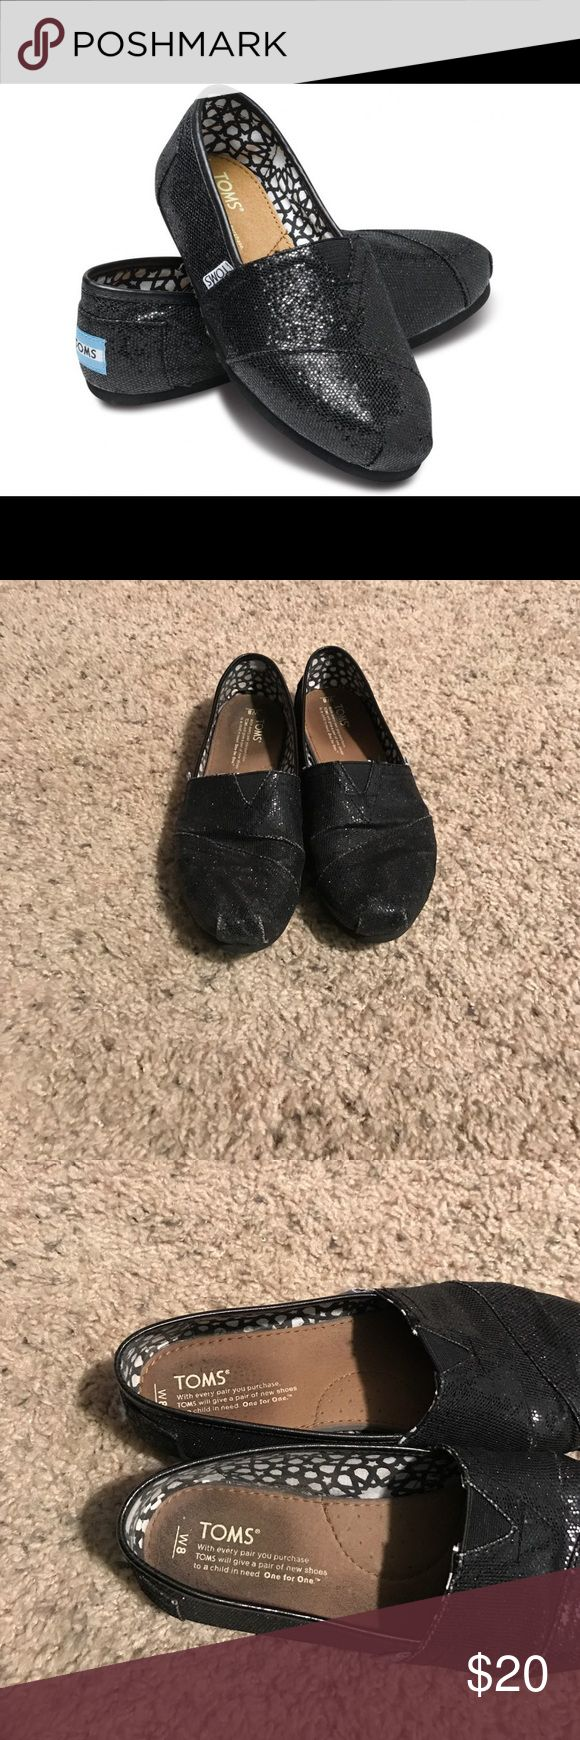 Black Glitter TOMS Bag Included These shoes have some wear, but have plenty of life left in them!  There's a little bit of scuffing on the toes (see pics), but the shoes themselves are still in great shape.  Open to offers and bundles! TOMS Shoes Flats & Loafers